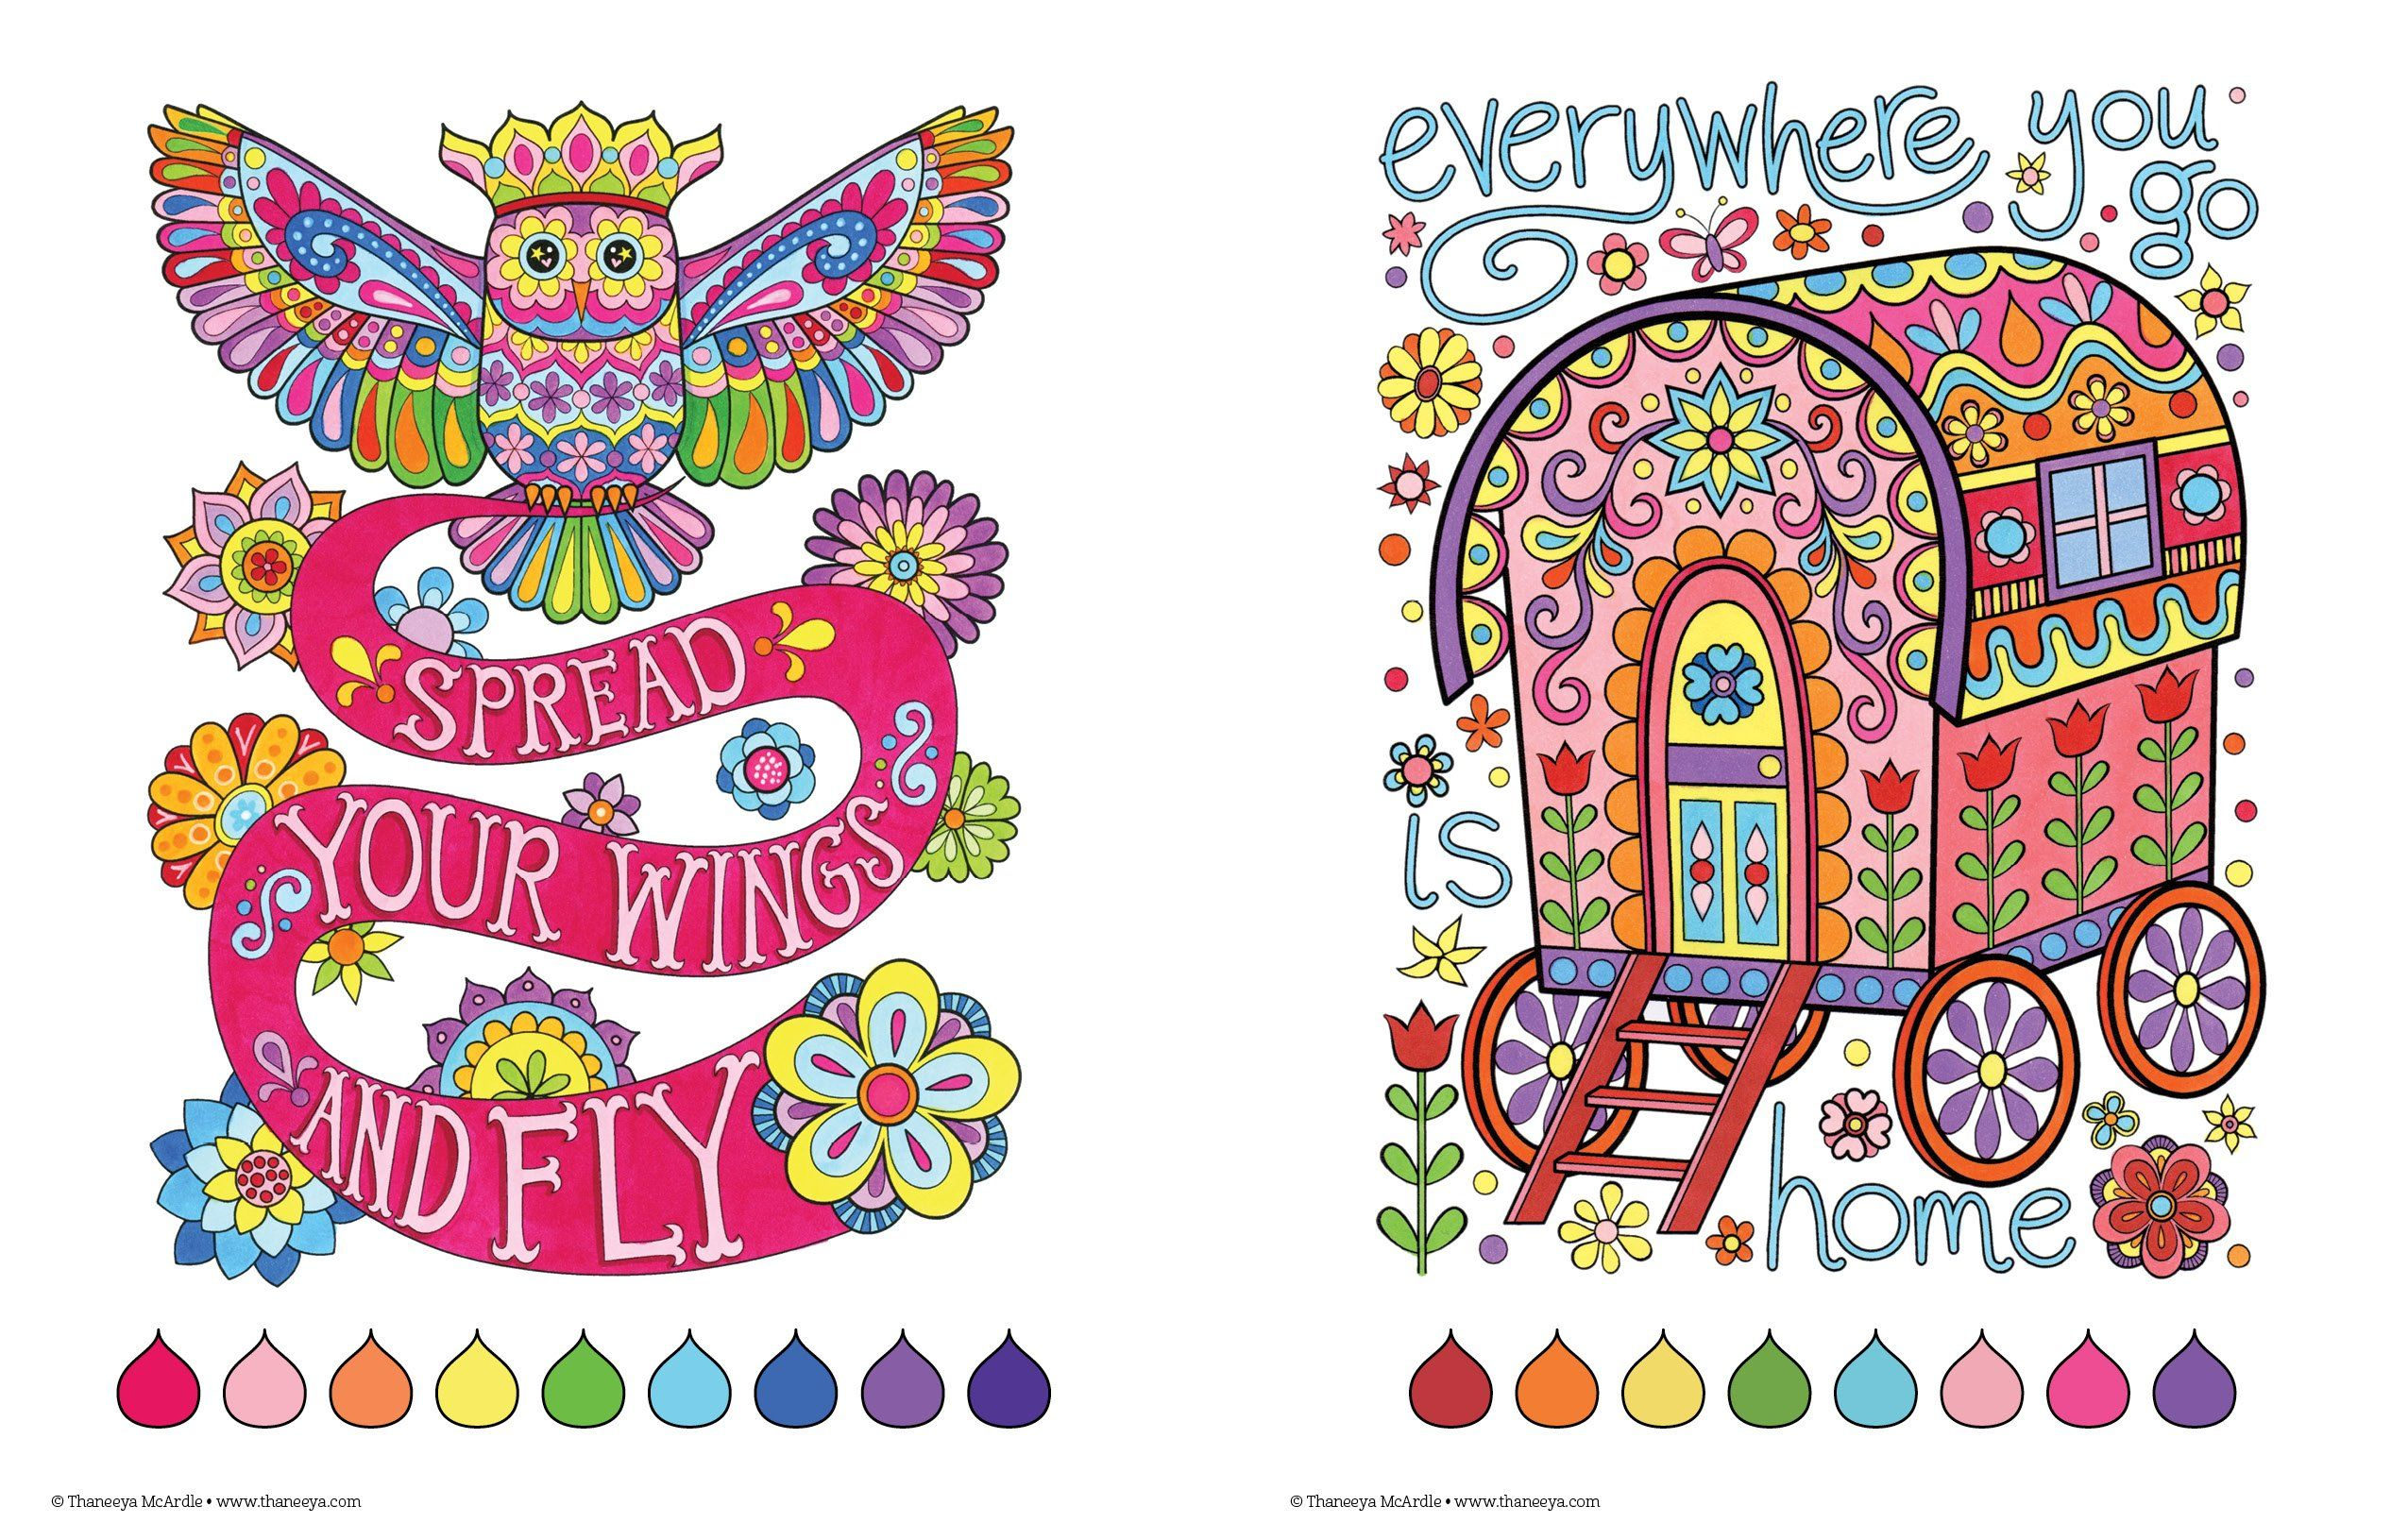 Art from Free Spirit Coloring Book by Thaneeya McArdle